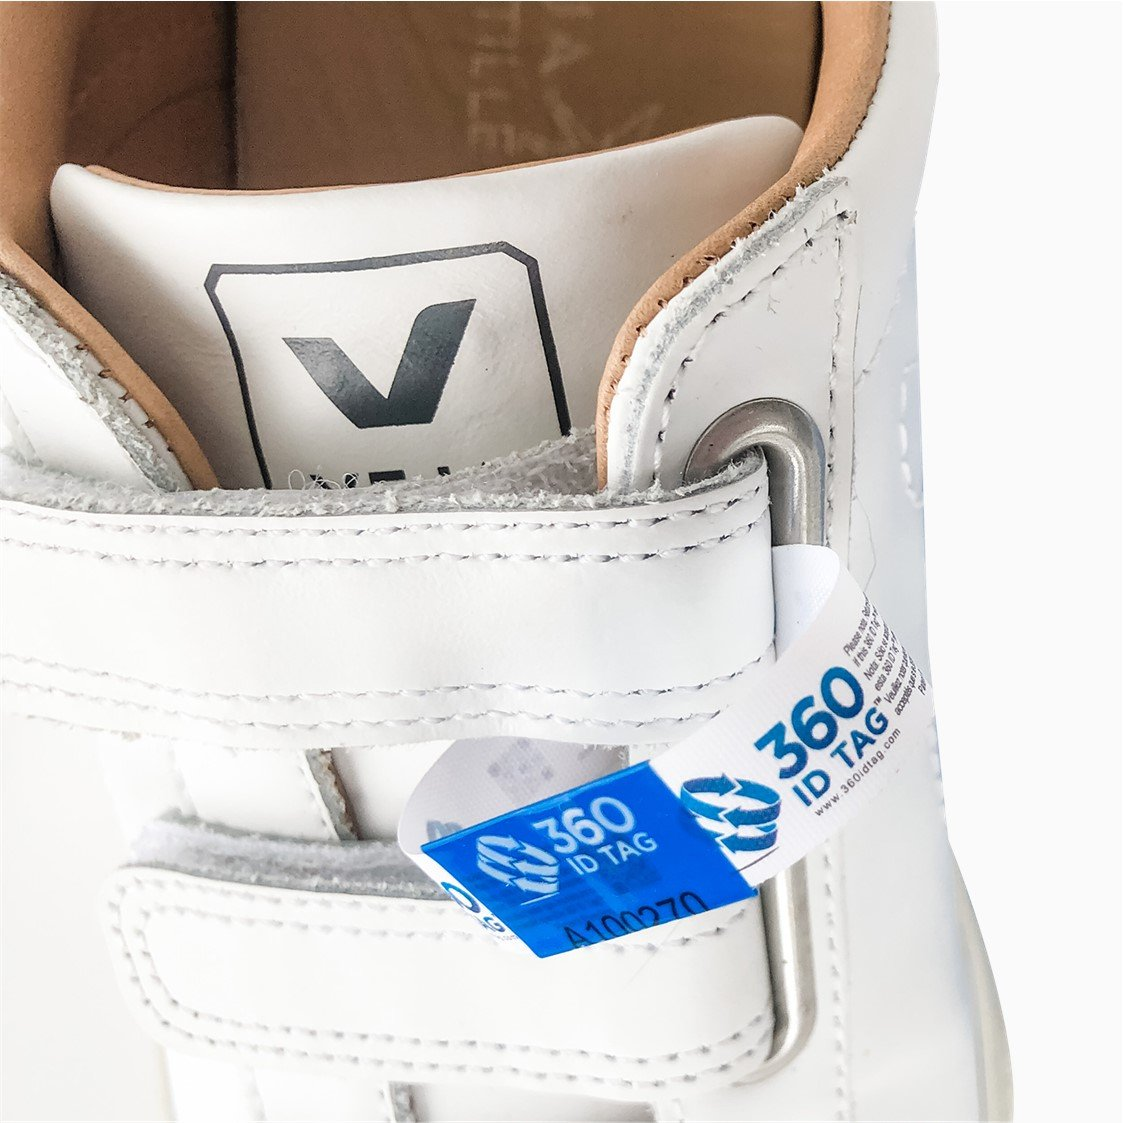 Sneakers with e-commerce return tag to prevent return fraud like wardrobing, wear and return, counterfeit product switches. 360 ID Tag